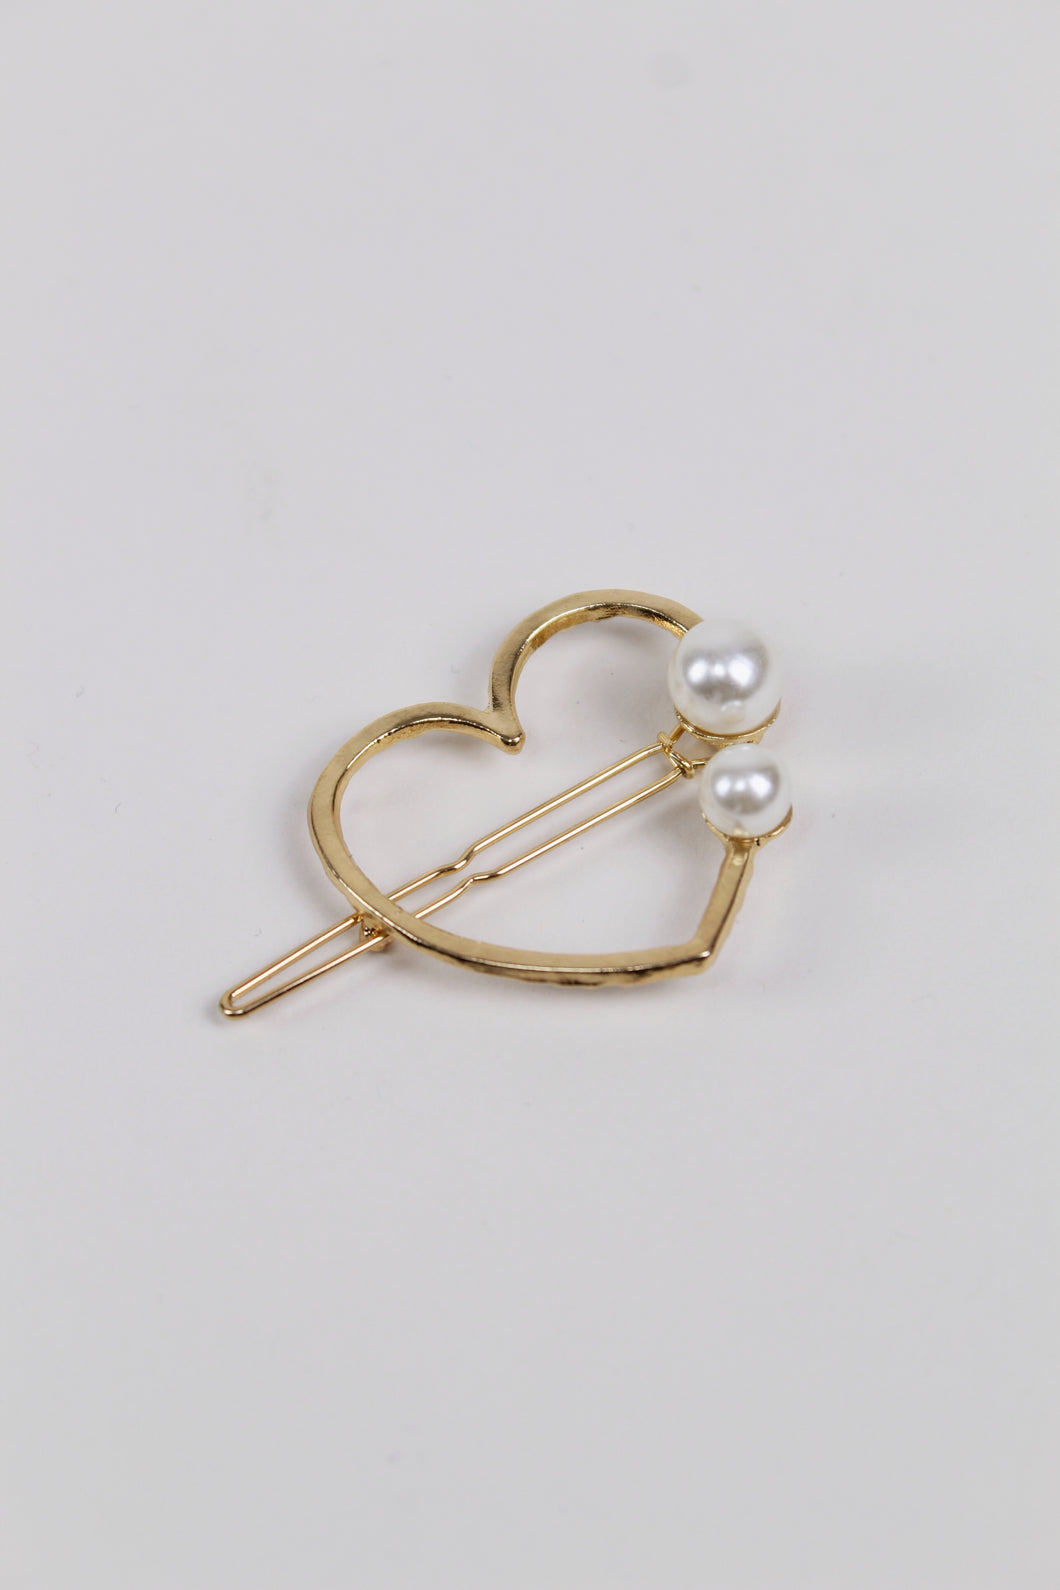 Heart Pearl Barrette - The Beach Bride by Chic Parisien, a destination for beach weddings, bachelorettes and honeymoons